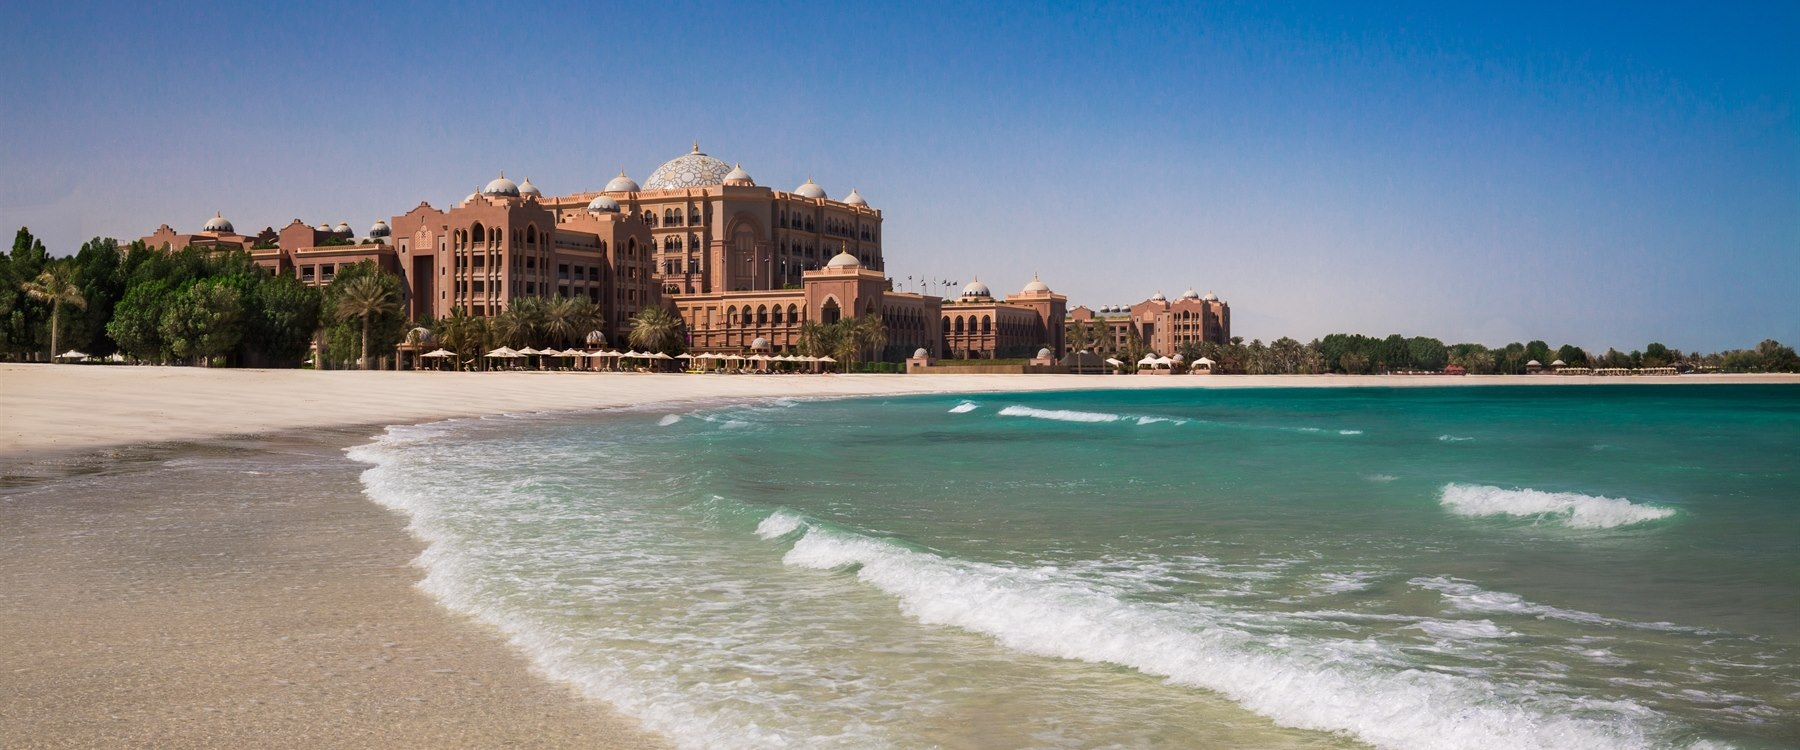 Palace exterior beach view at Emirates Palace, Abu Dhabi